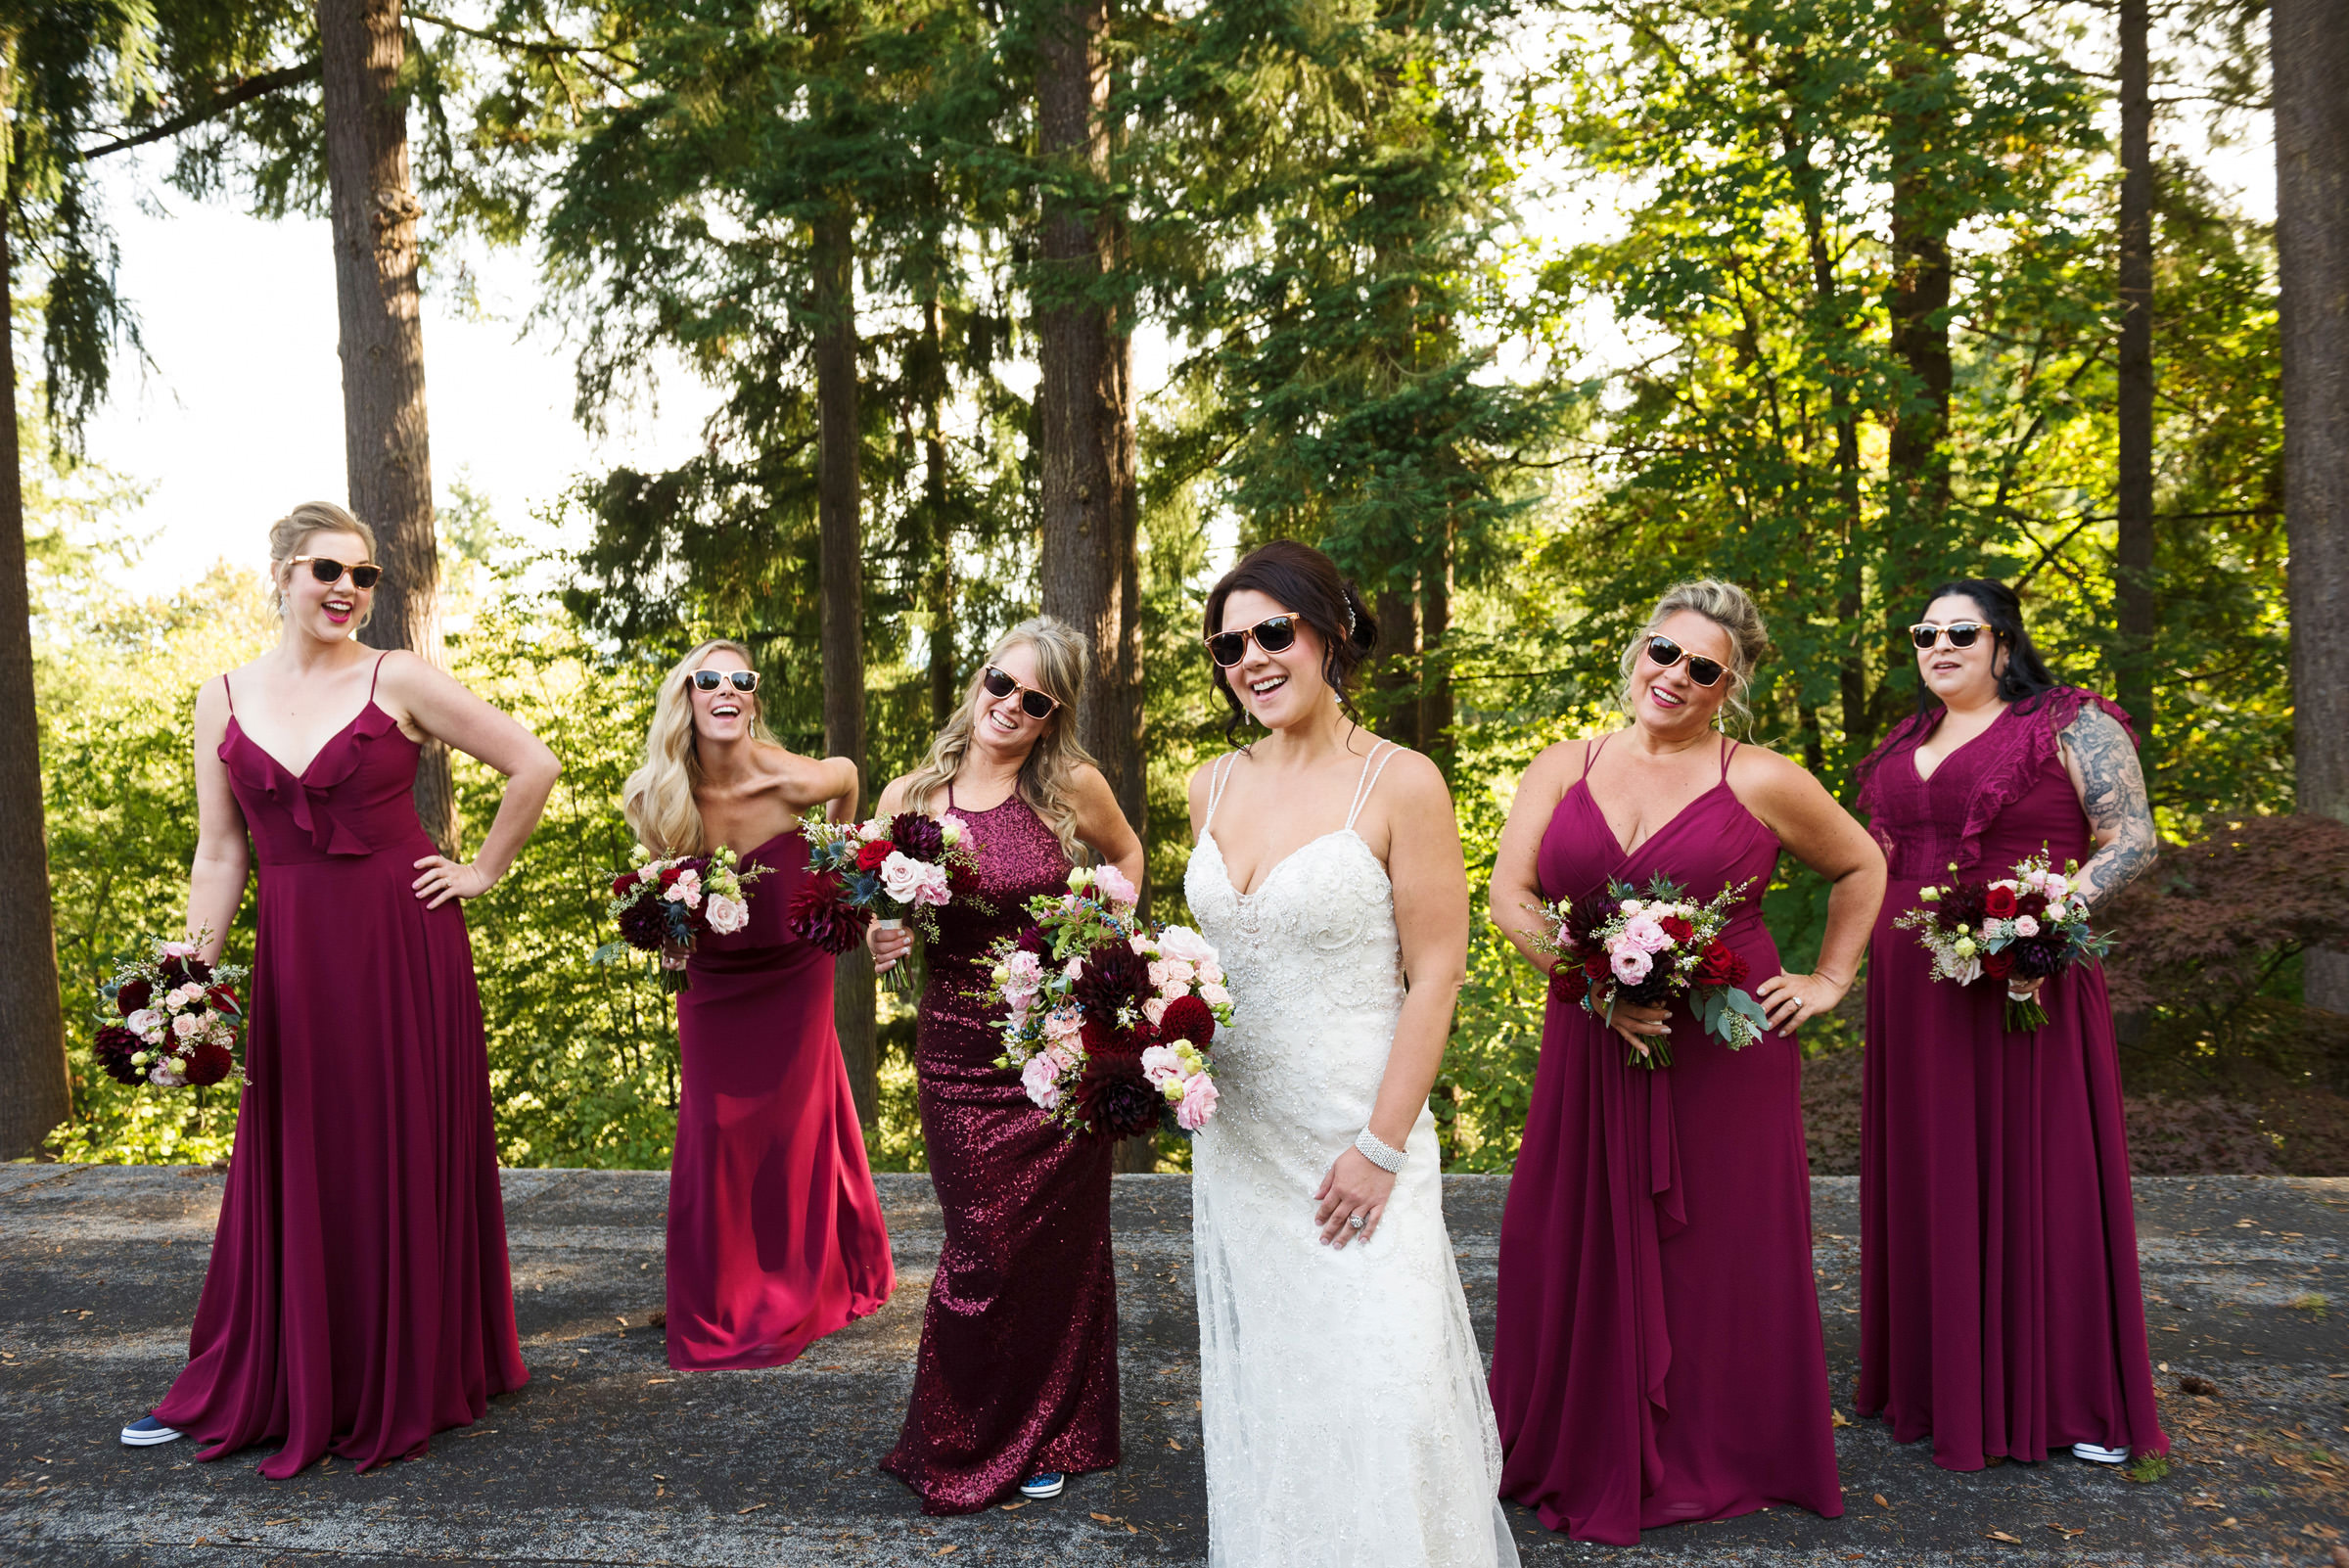 Bridal party vamping it up - photo by Barbie Hull Photography